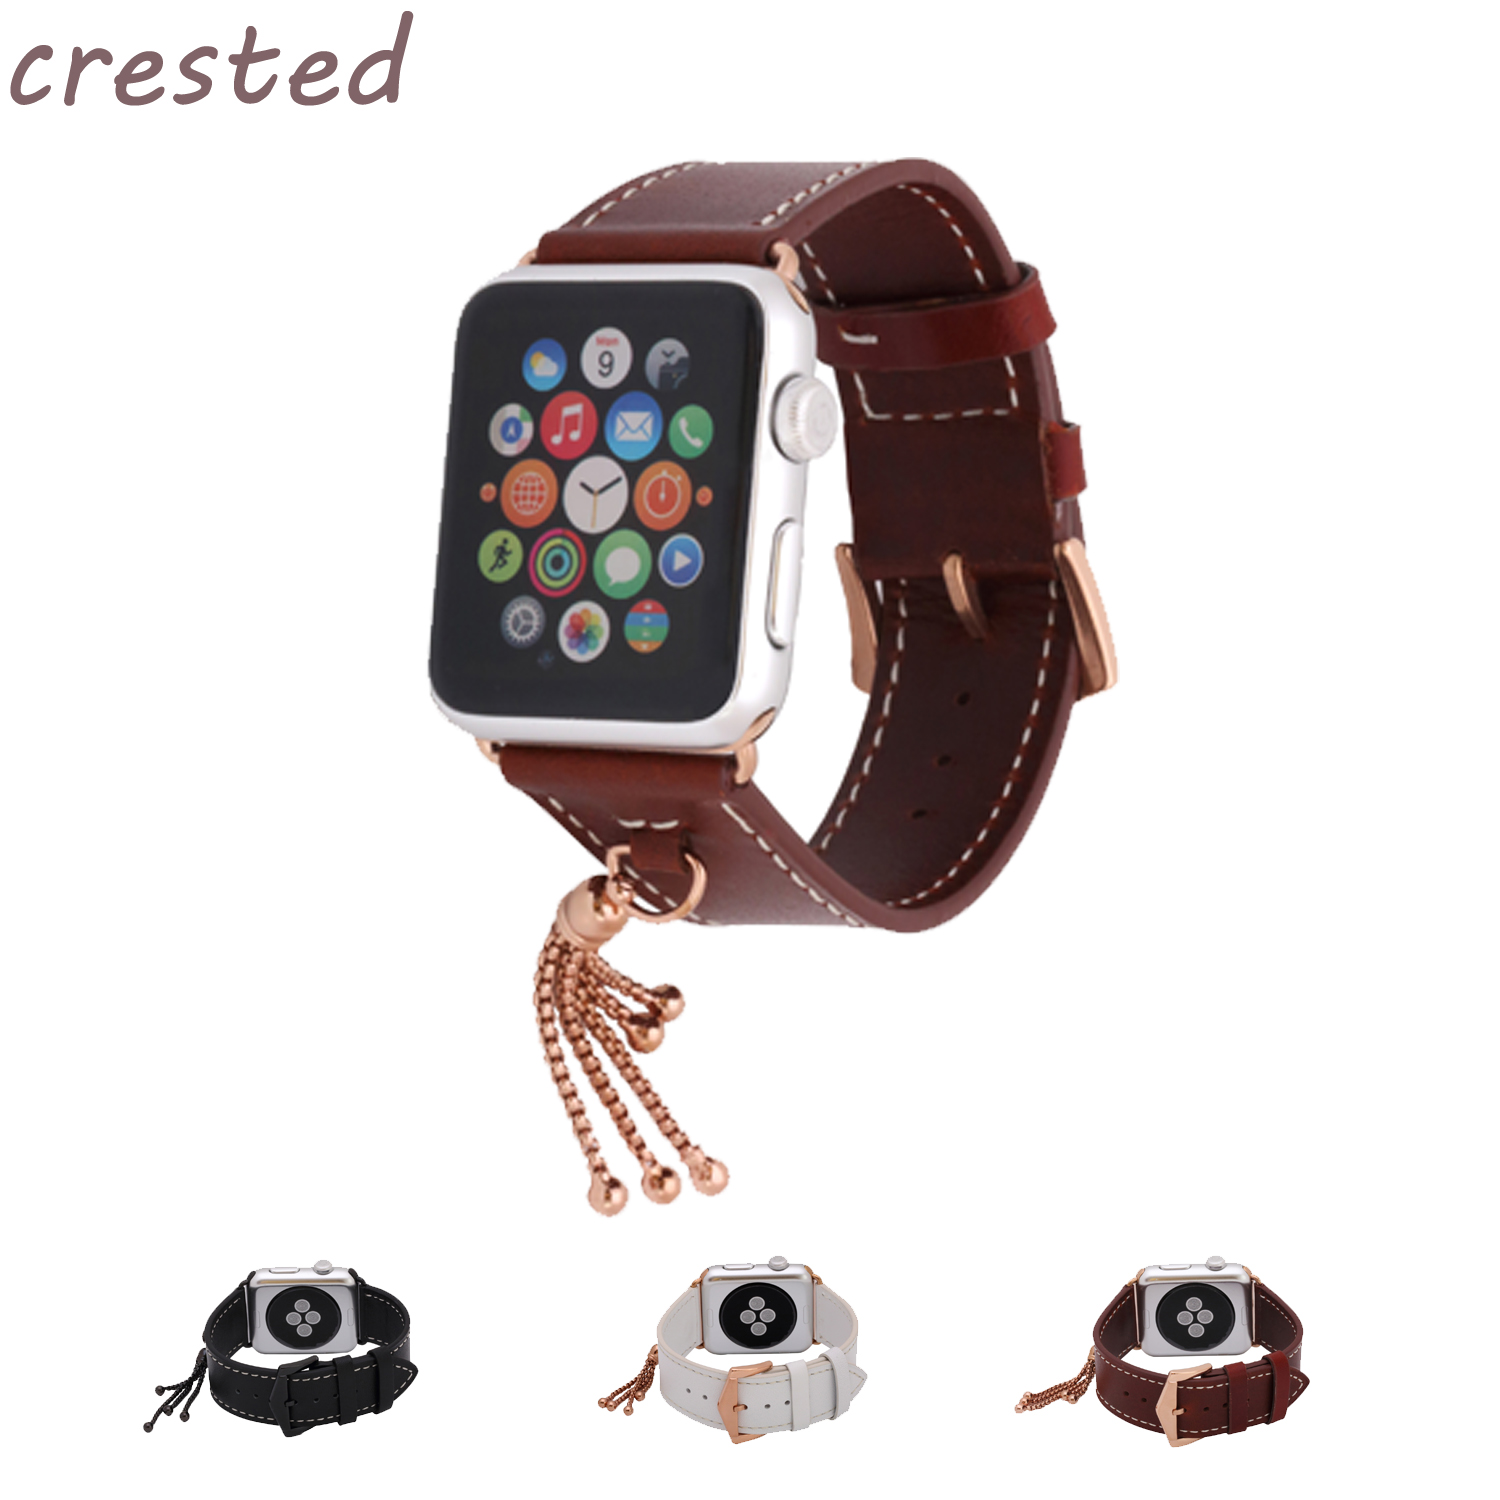 CRESTED genuine leather strap for apple watch band 42mm/38 Ornaments bracelet belt leather band for iwatch serise 1 2 3 strap genuine leather loop band for apple watch band 42mm 38mm strap bracelet for iwatch series 1 2 3 adjustable magnetic closure belt